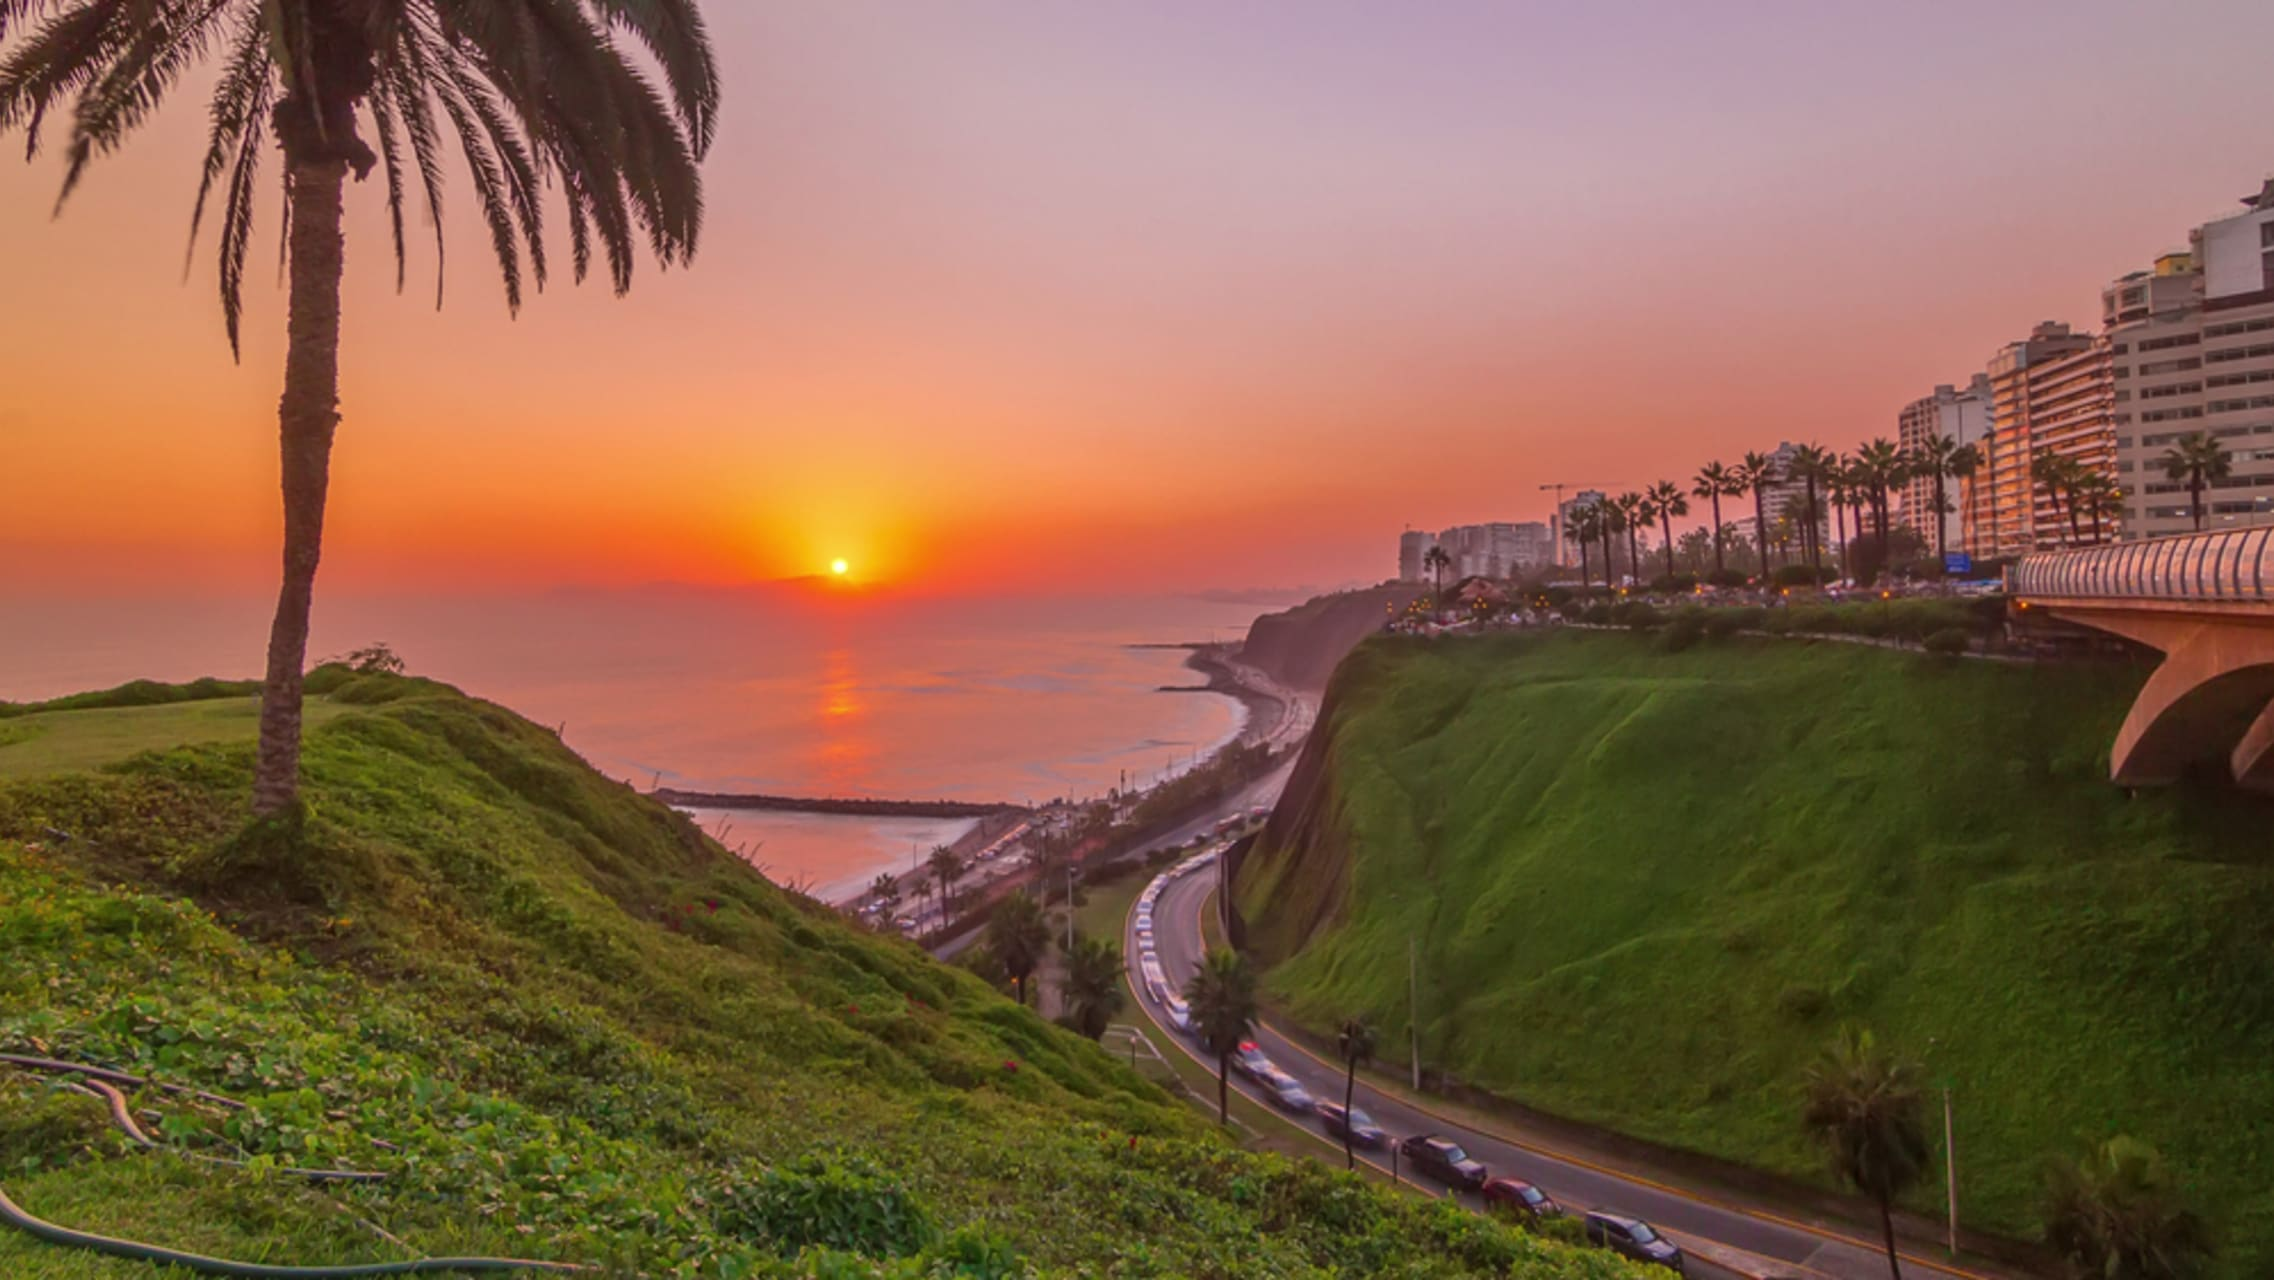 Lima - Miraflores: From the Inca Market to the Love Park